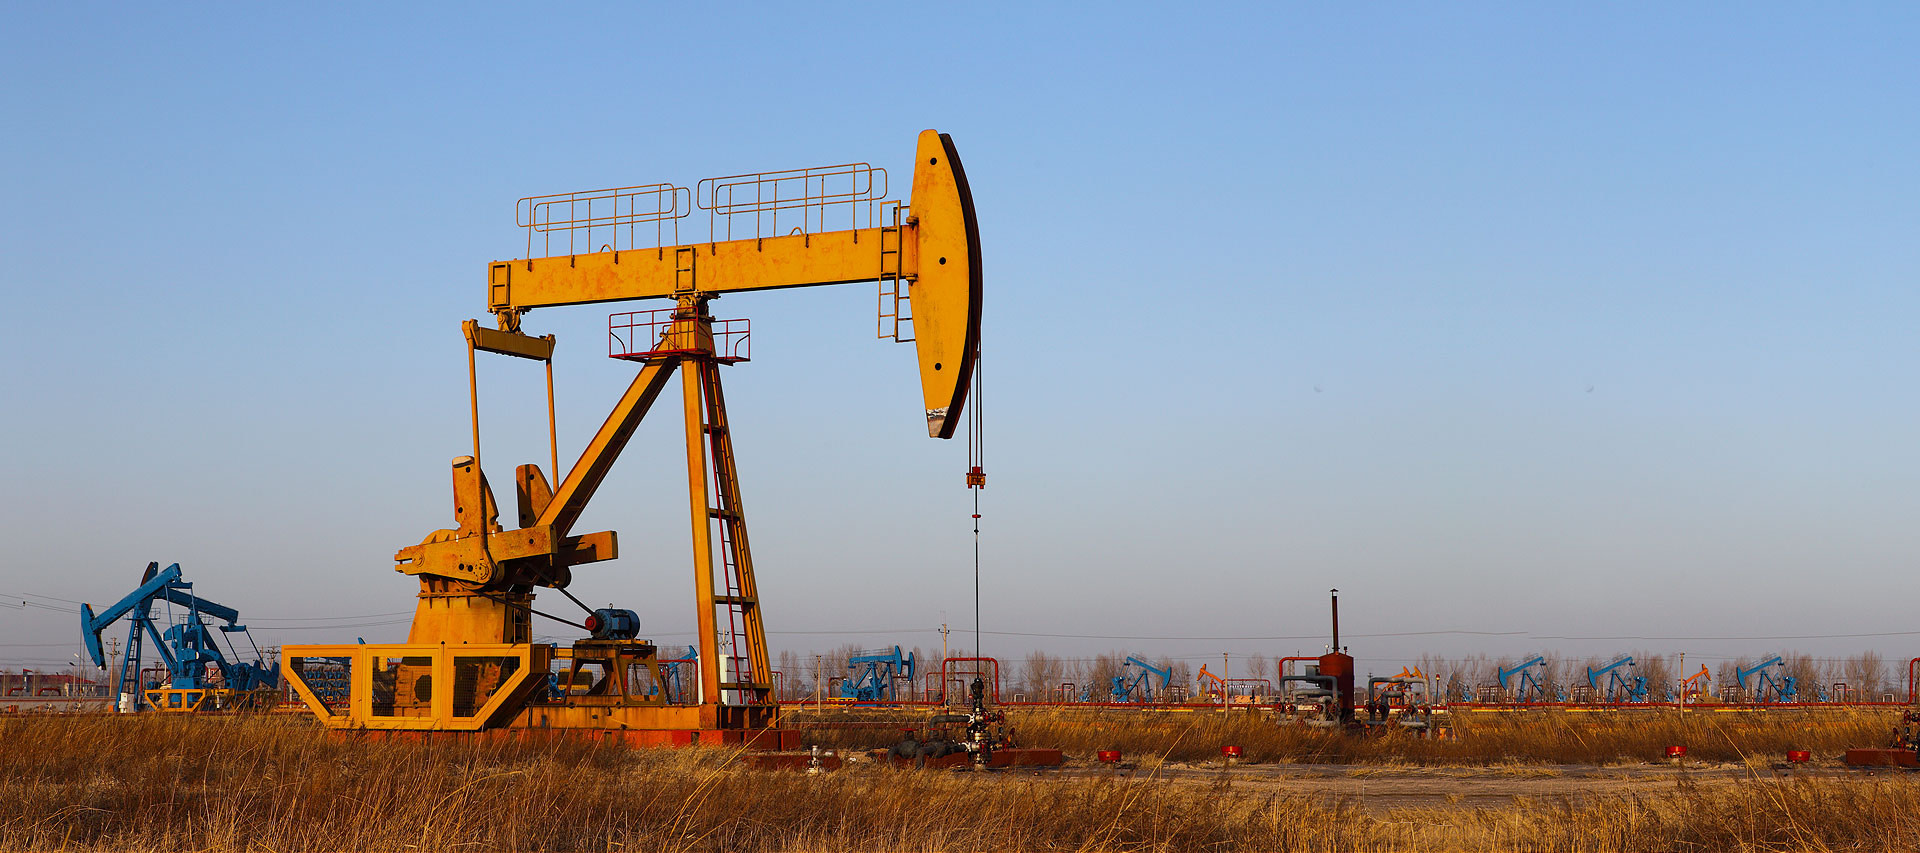 Ian Cogswell joins Proximo's Weekly Debrief to discuss the oil and gas sector in relation to Covid-19